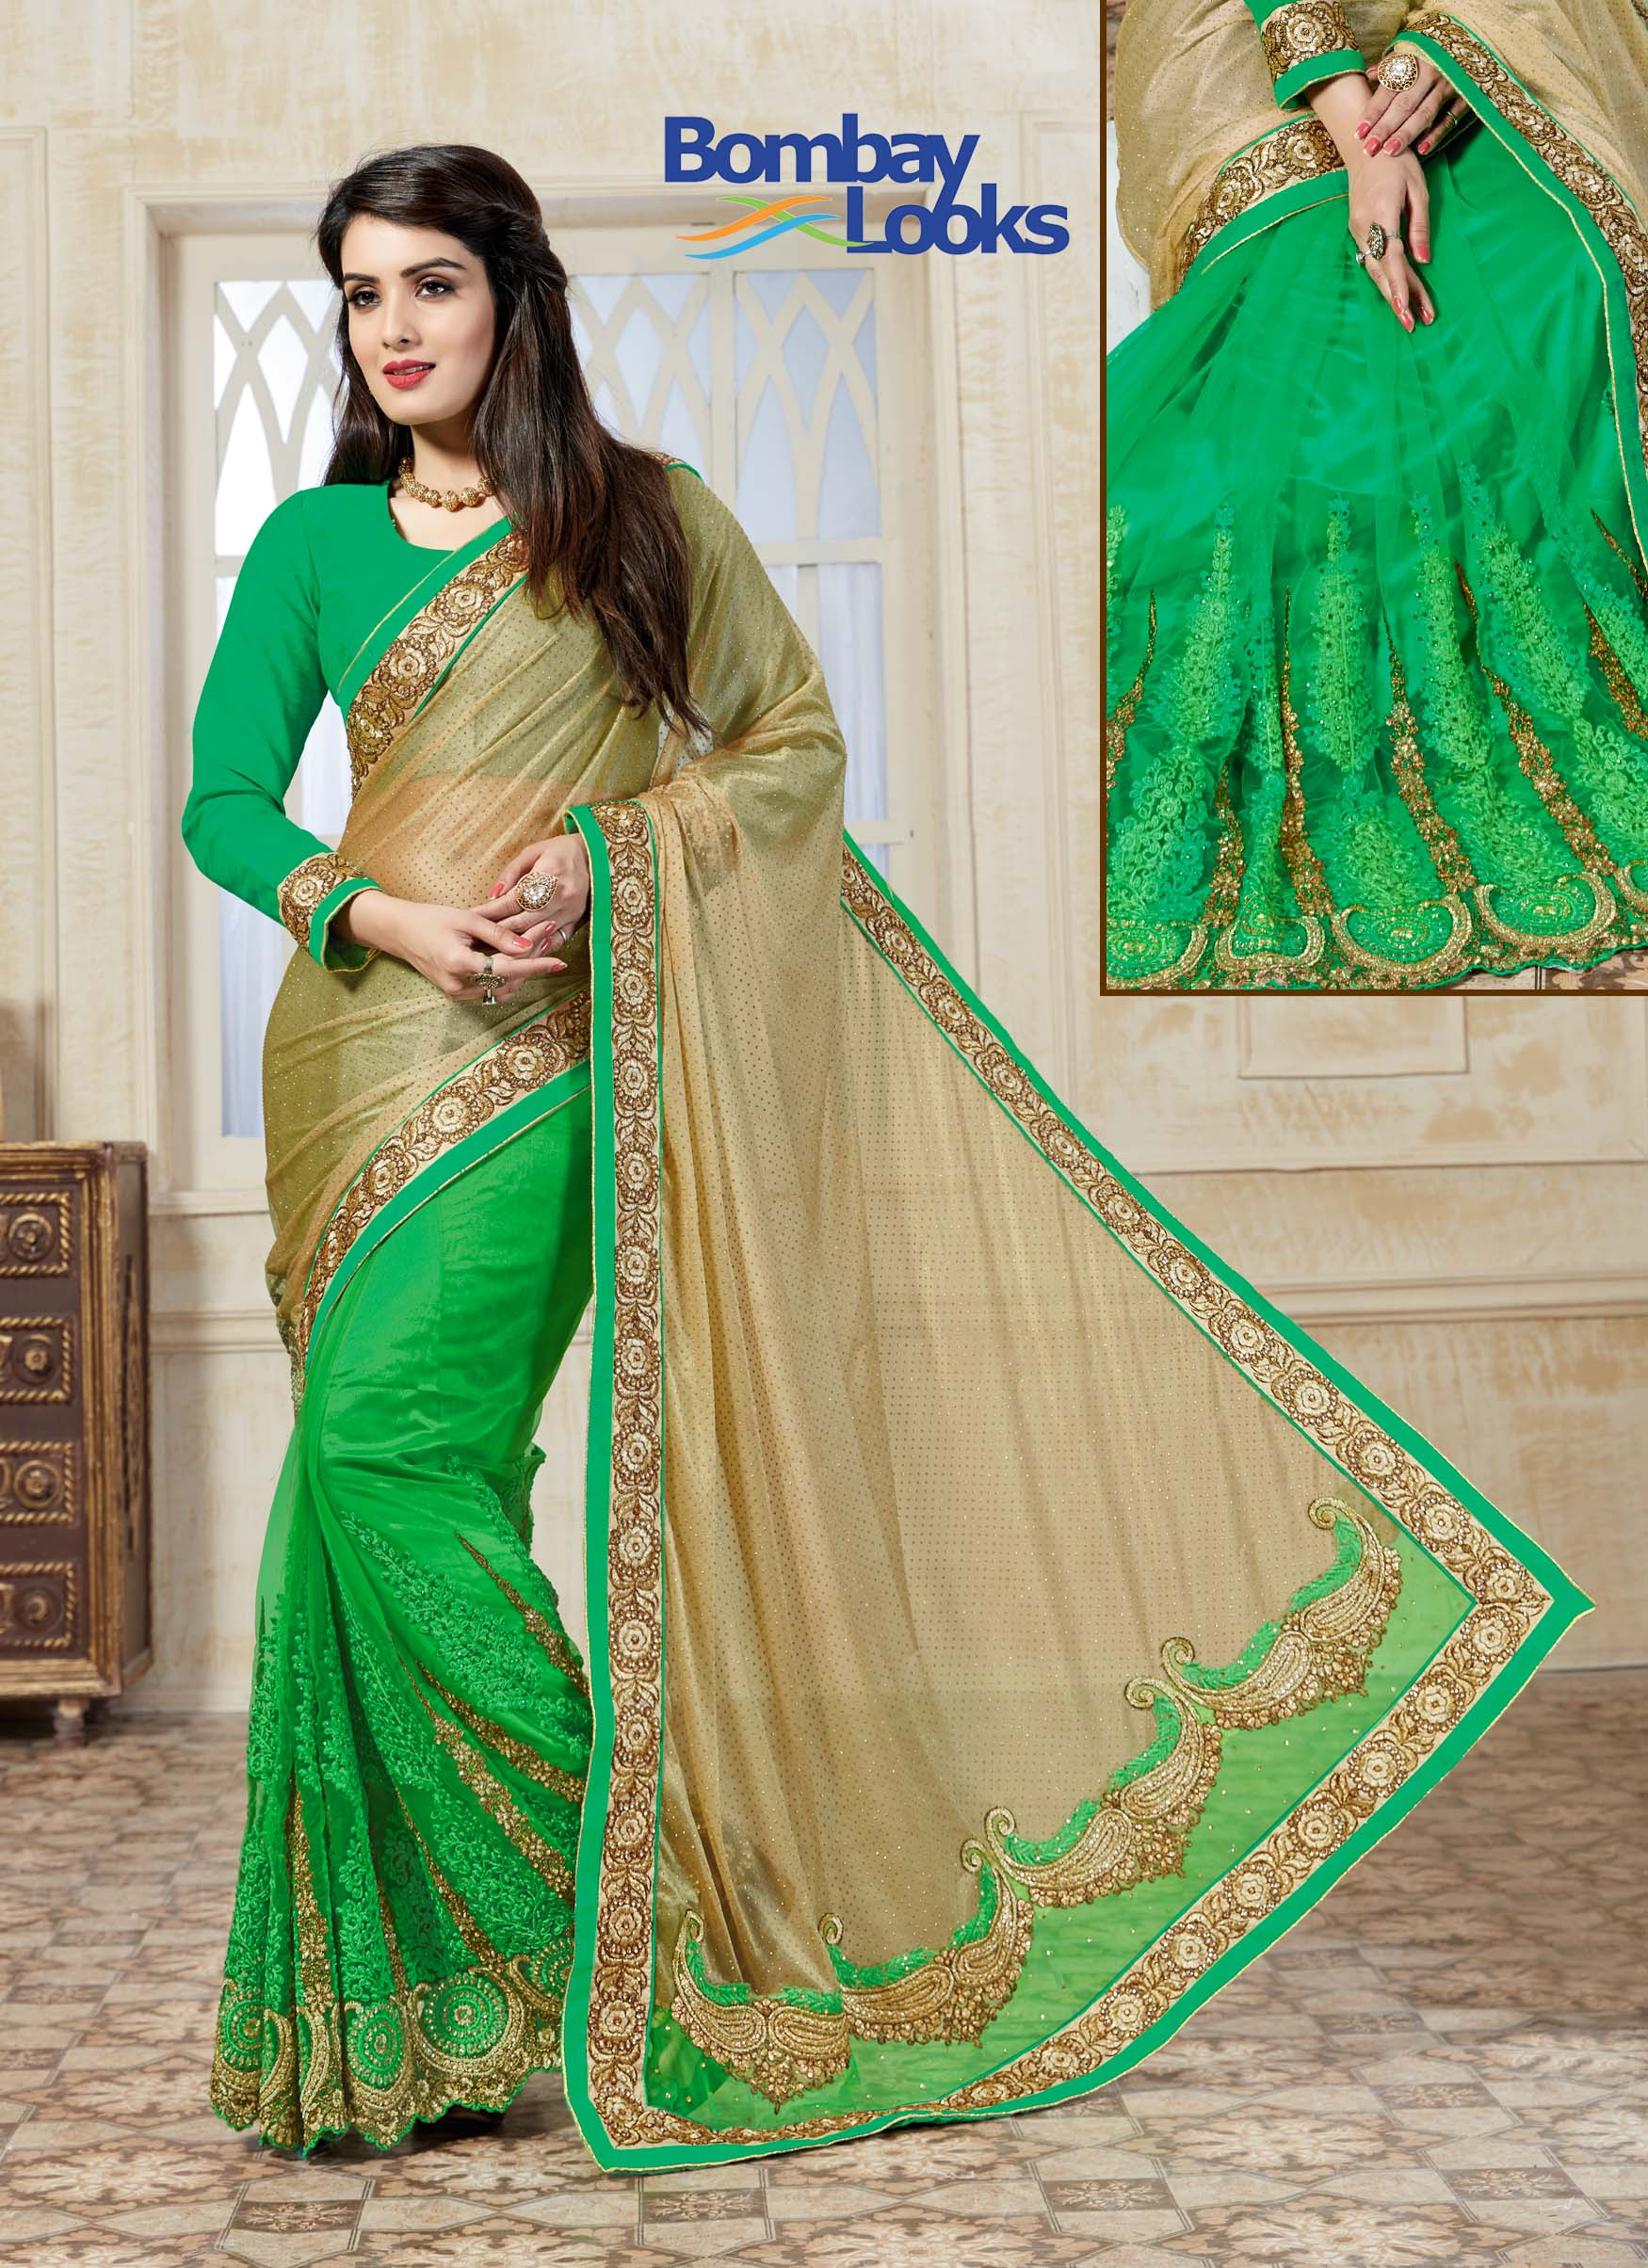 Shimmering gold and lime green net saree with full sleeved blouse and golden stone embroidery